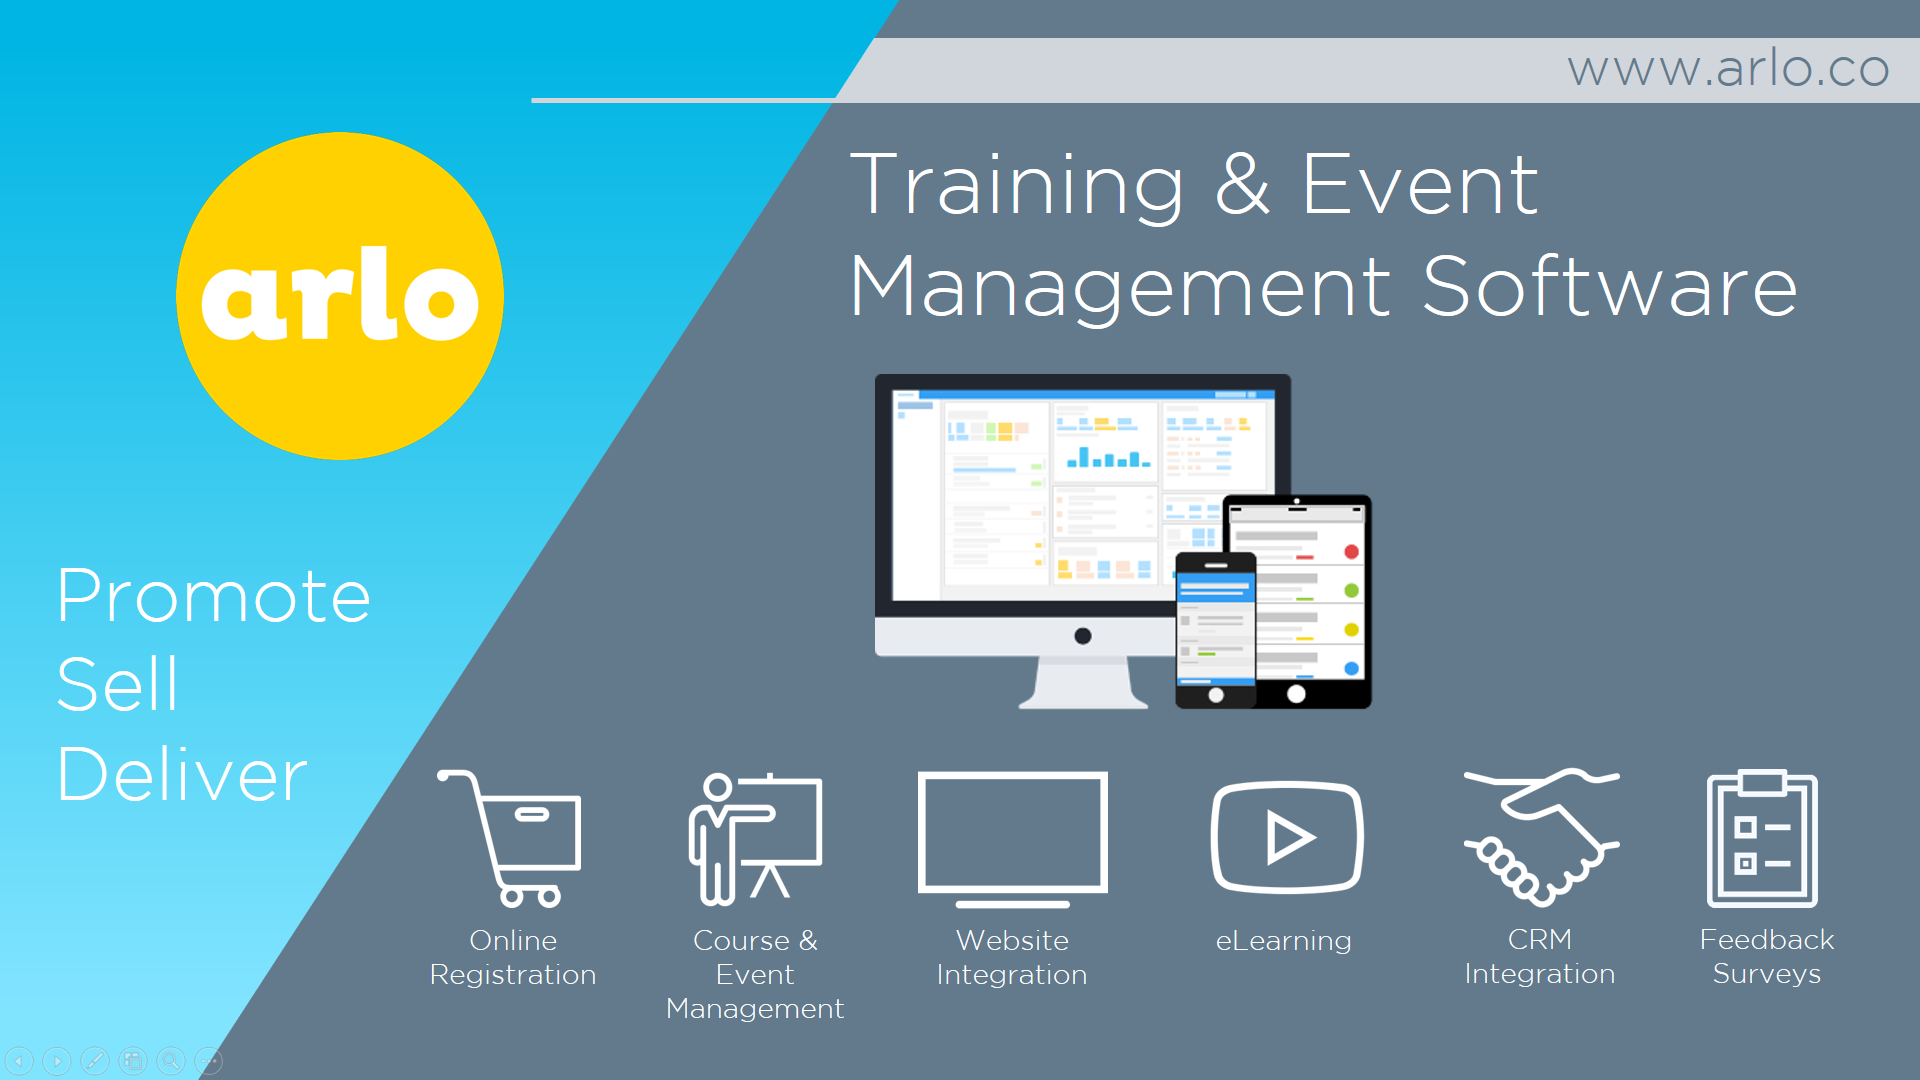 Arlo Training & Event Management Software